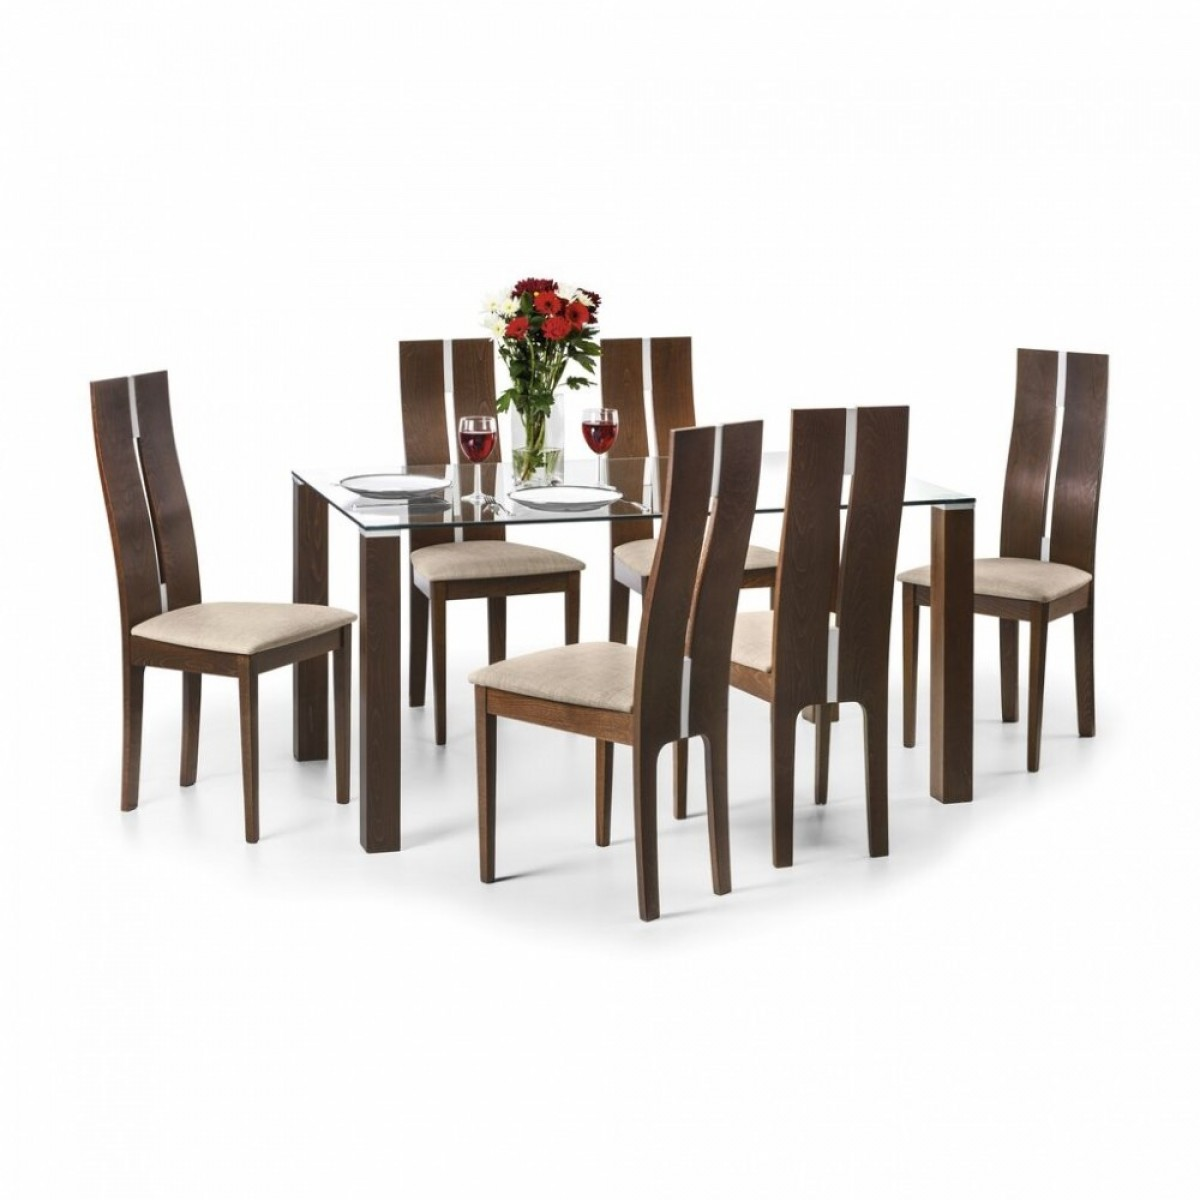 Dining set julian bowen cayman dining set cay101 cay102 6 for Dining table and 6 chairs